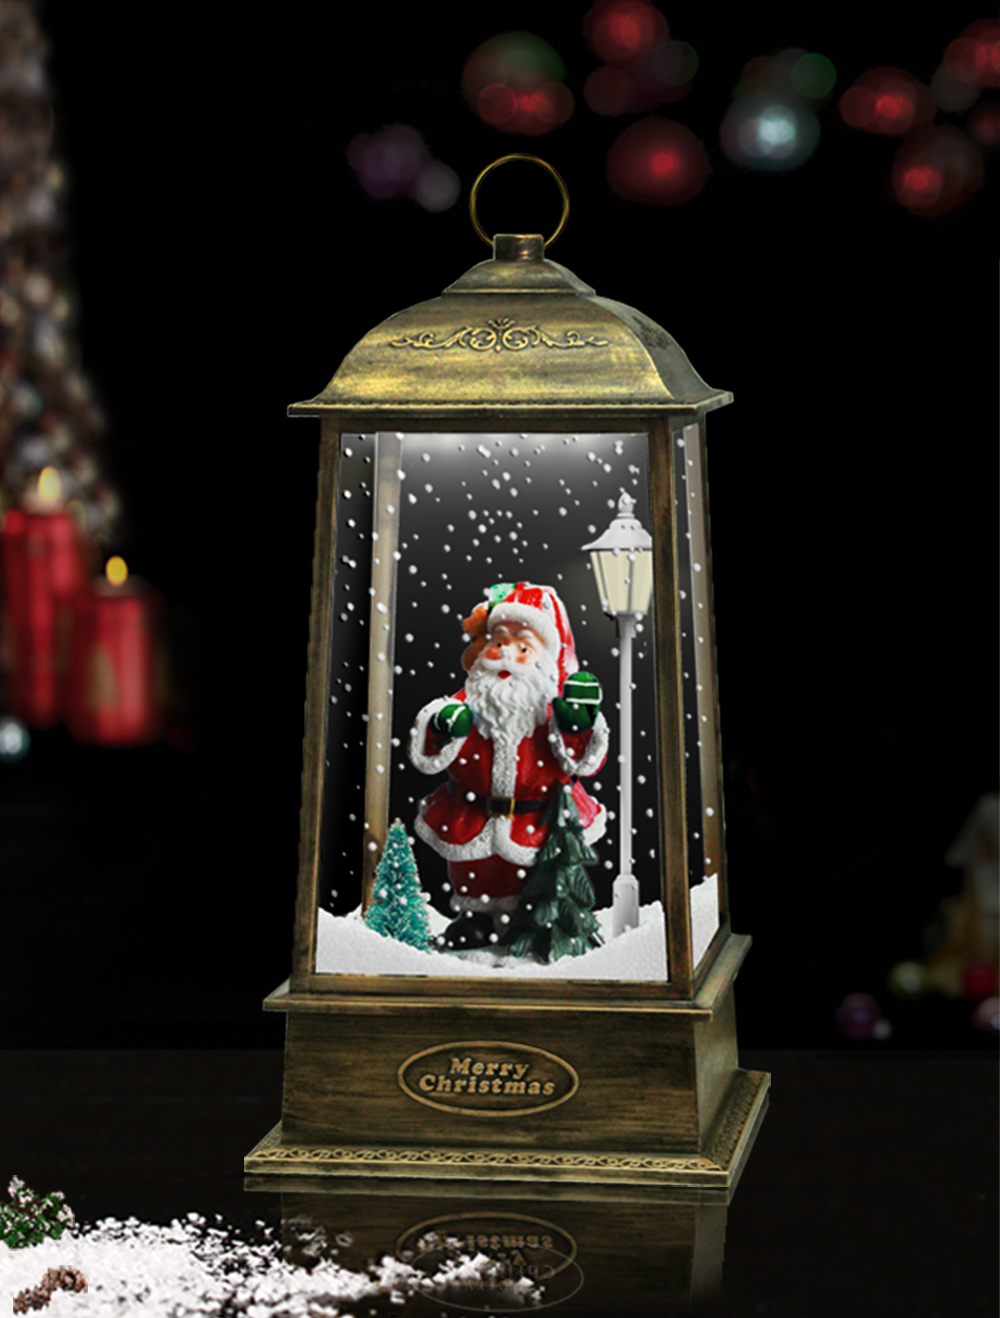 Retro Style New Product - Antique Snowing Lantern